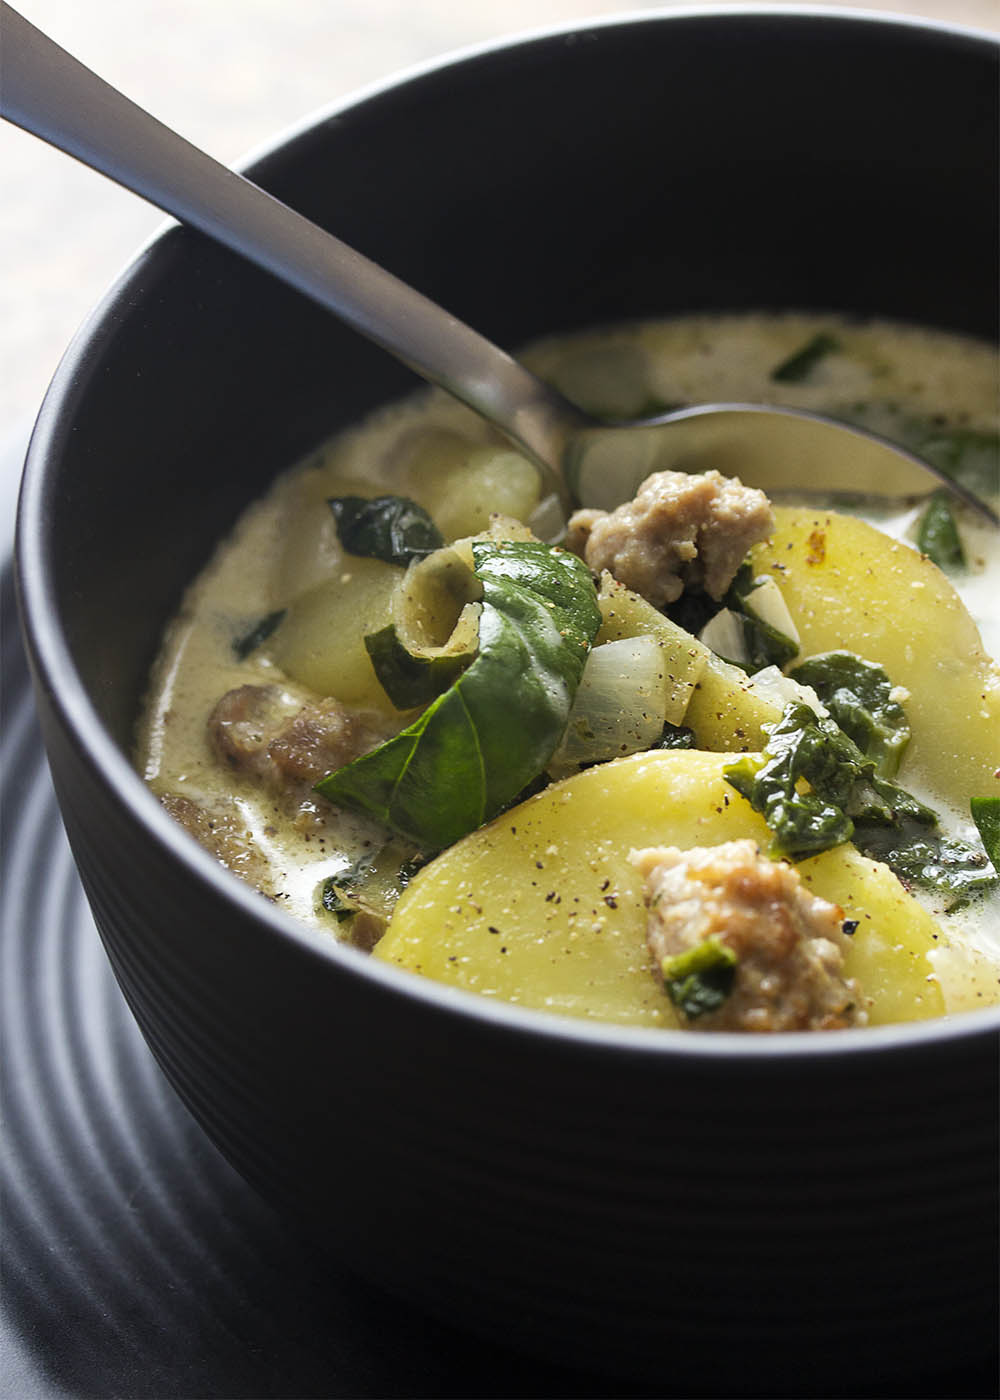 Love Olive Garden's zuppa toscana and want to make it at home? I've adapted the recipe to create a slow cooker zuppa toscana perfect to make on busy days! | justalittlebitofbacon.com